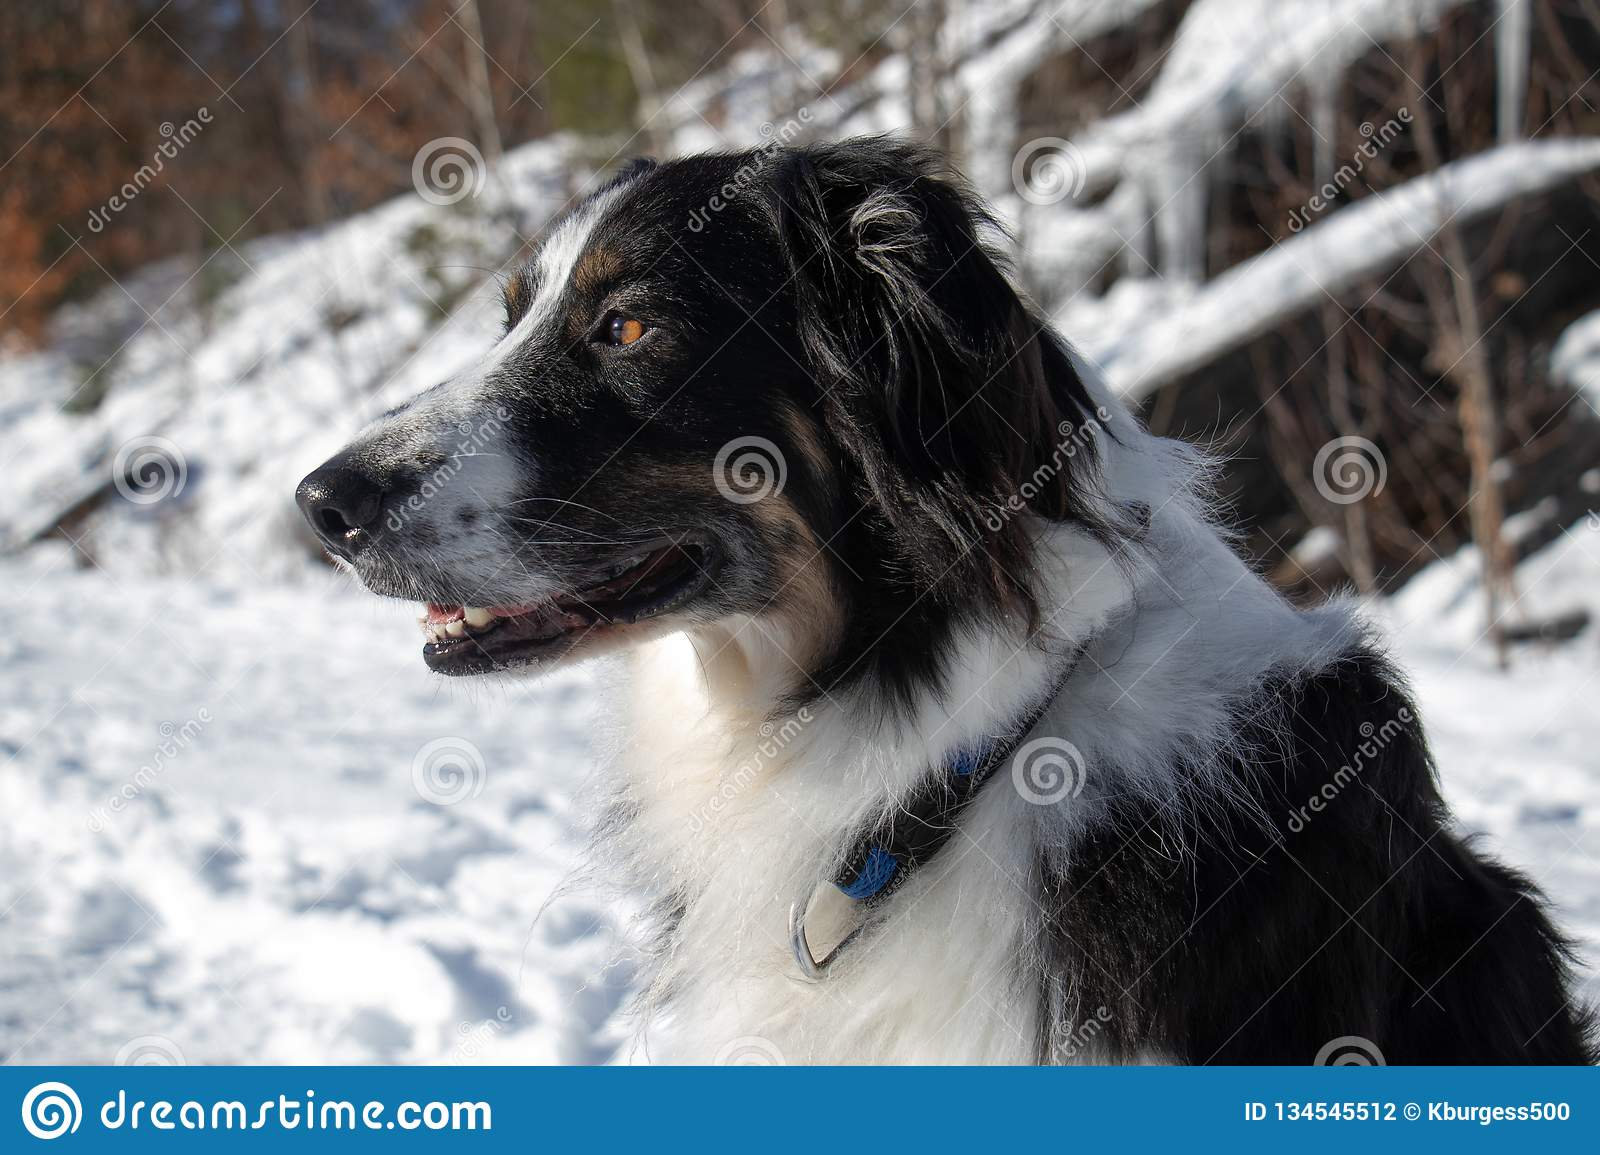 Portrait Of A Dog In Snow Stock Photo Image Of Cute 134545512